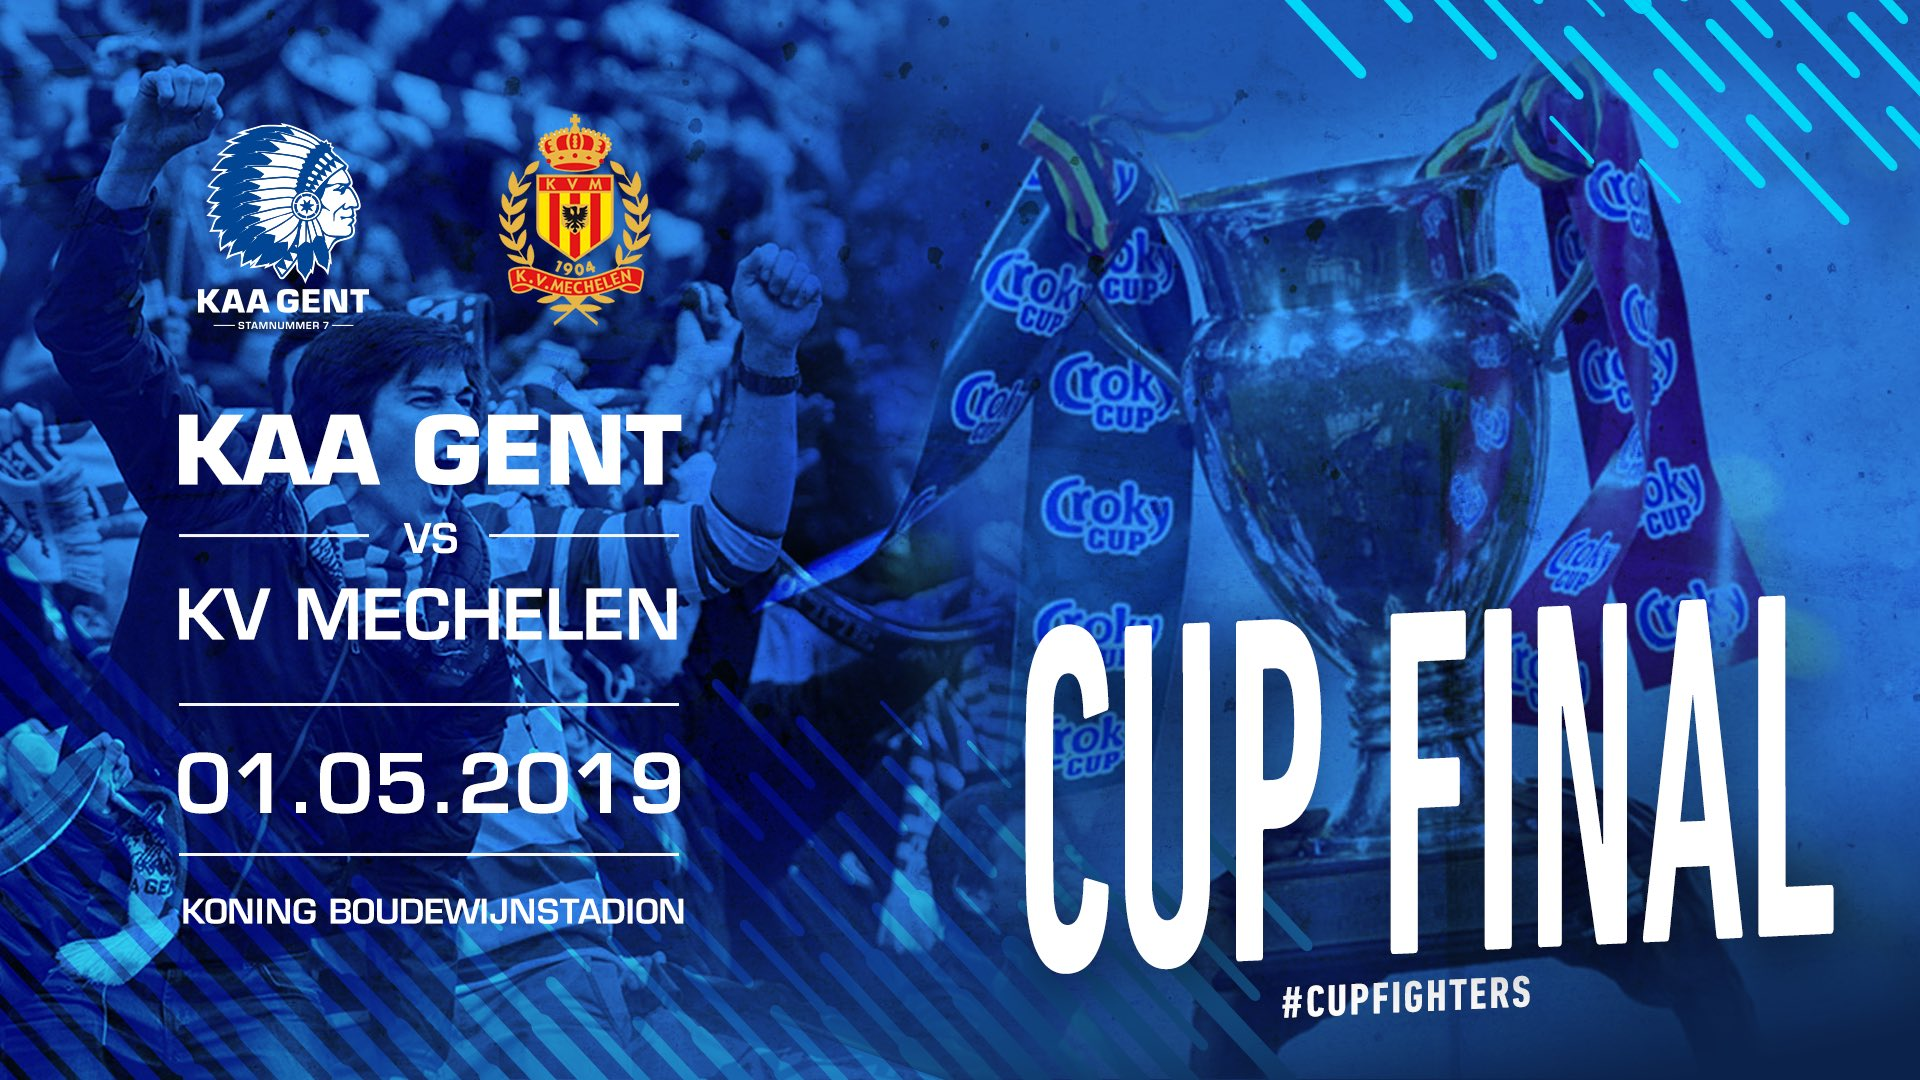 Kaa Gent On Twitter Matchday Tme To Wrte Hstory